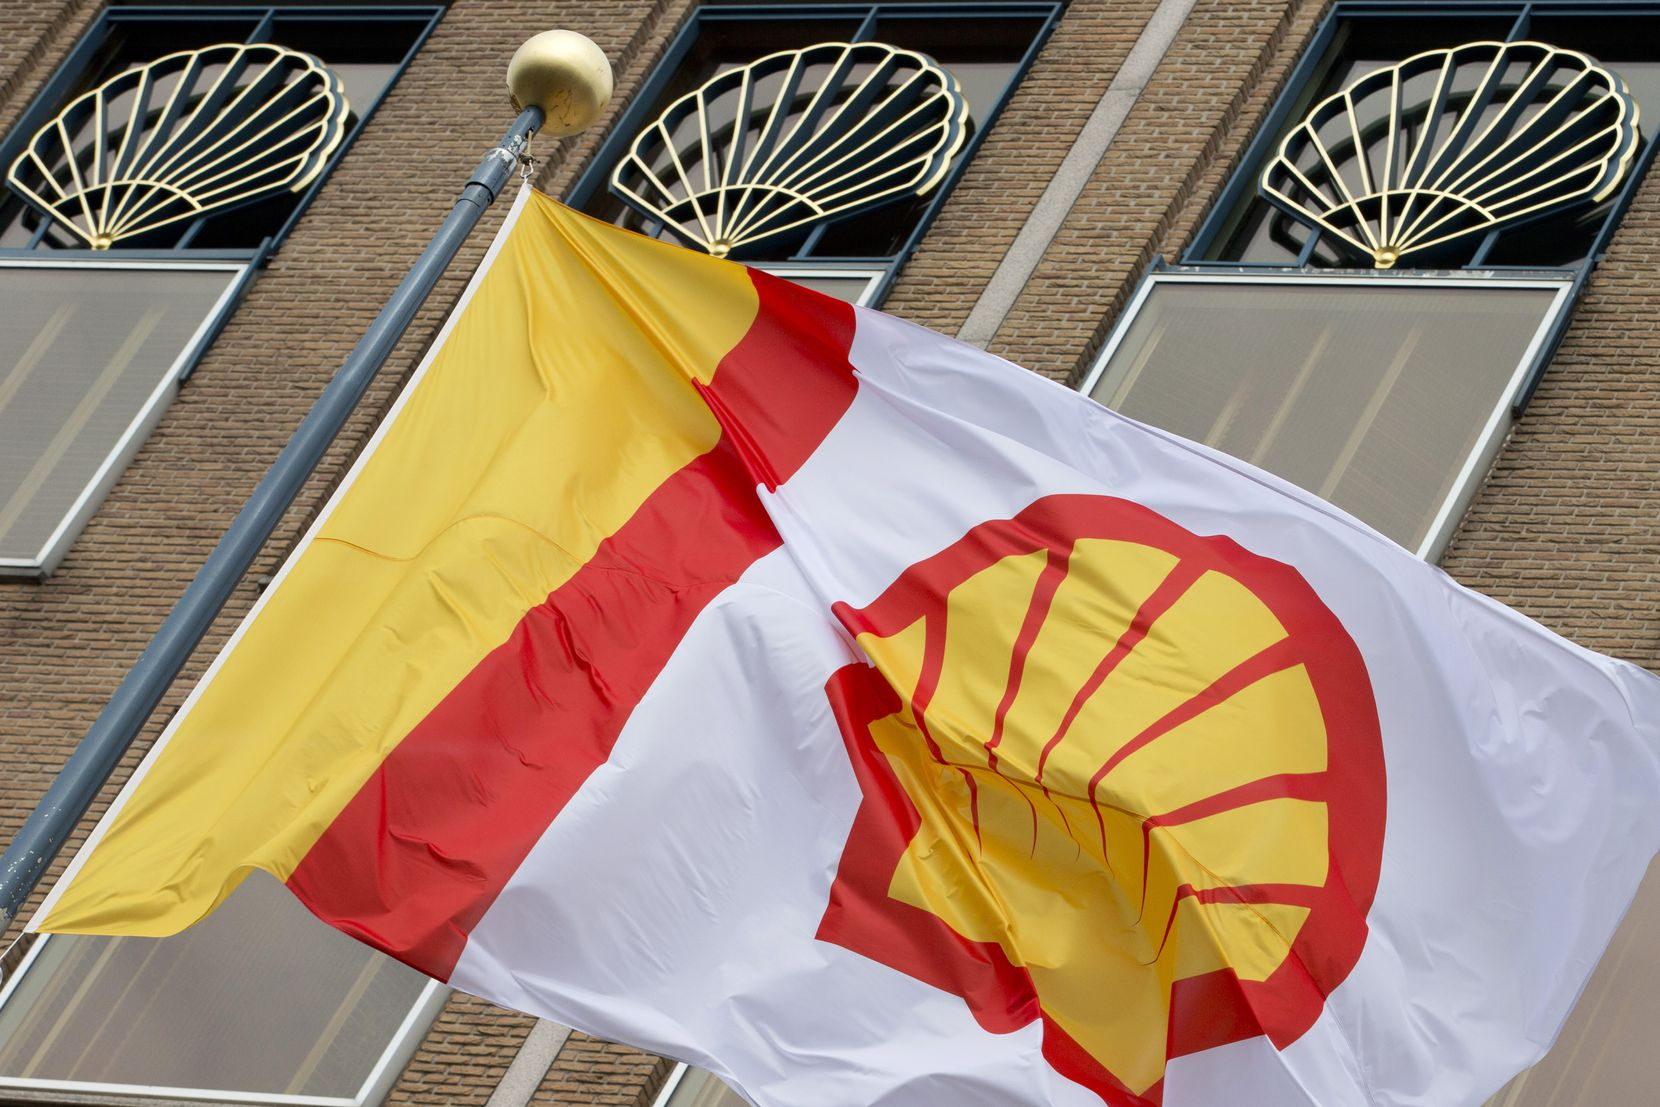 A flag bearing the company logo of Royal Dutch Shell, an Anglo-Dutch oil and gas company, flies outside the head office in The Hague, Netherlands. Royal Dutch Shell will reduce its operating costs by between $3 billion to $4 billion for the next 12 months to adapt to the virus outbreak crisis and plunging oil prices.